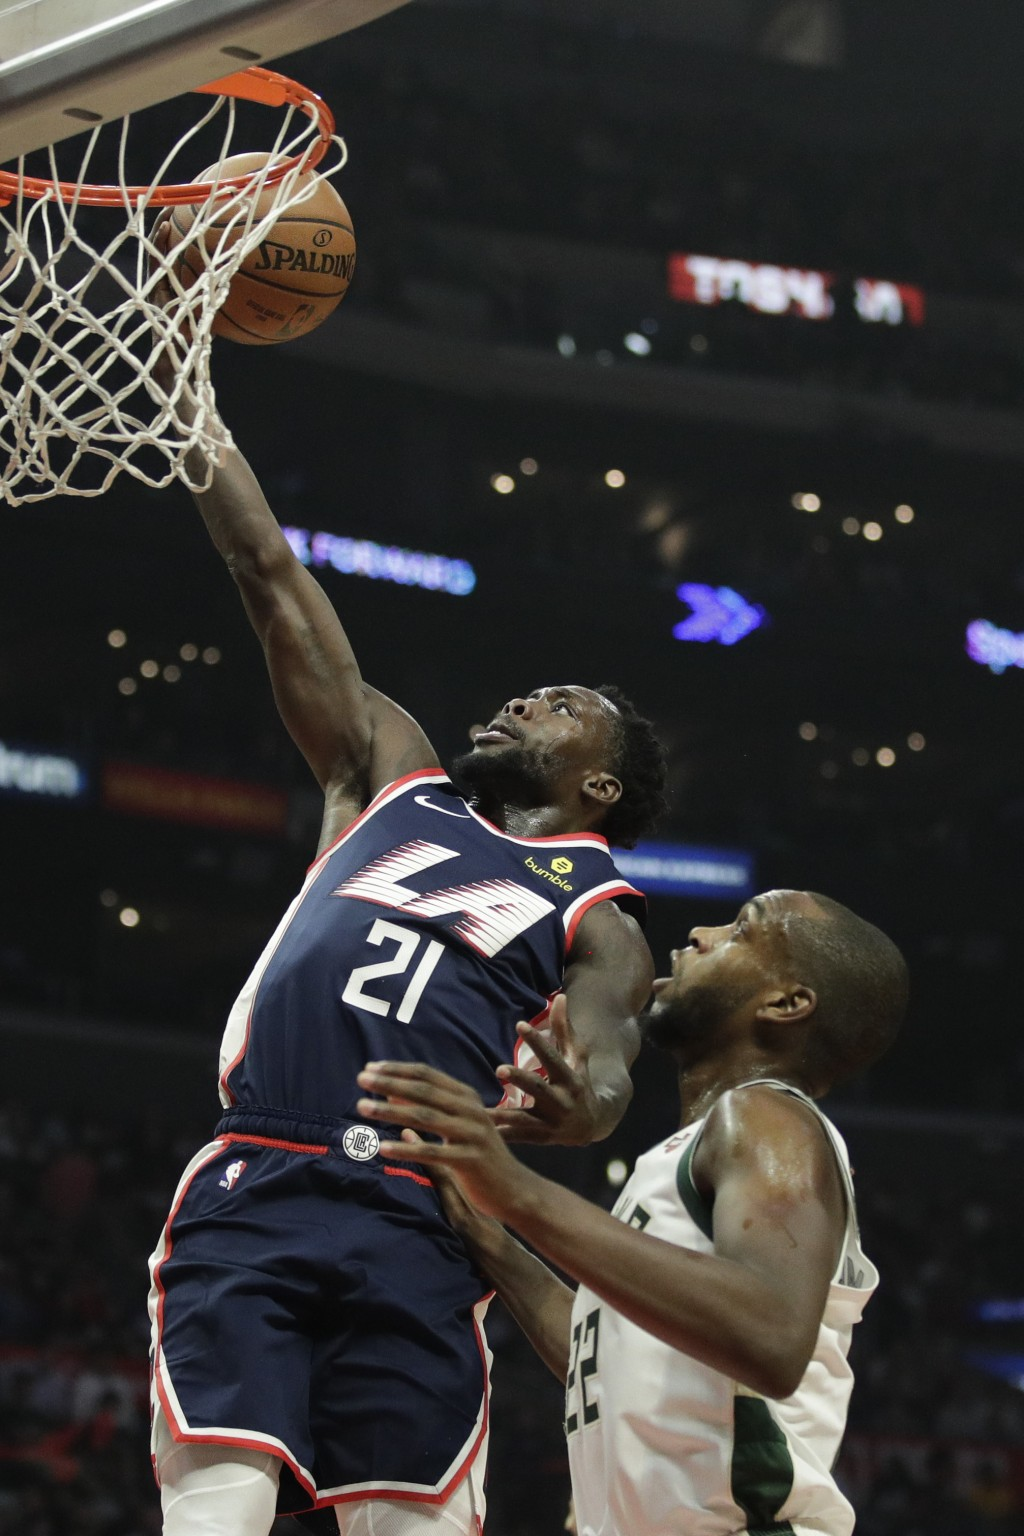 Los Angeles Clippers' Patrick Beverley, left, puts up a shot as Milwaukee Bucks' Khris Middleton looks on during the first half of an NBA basketball g